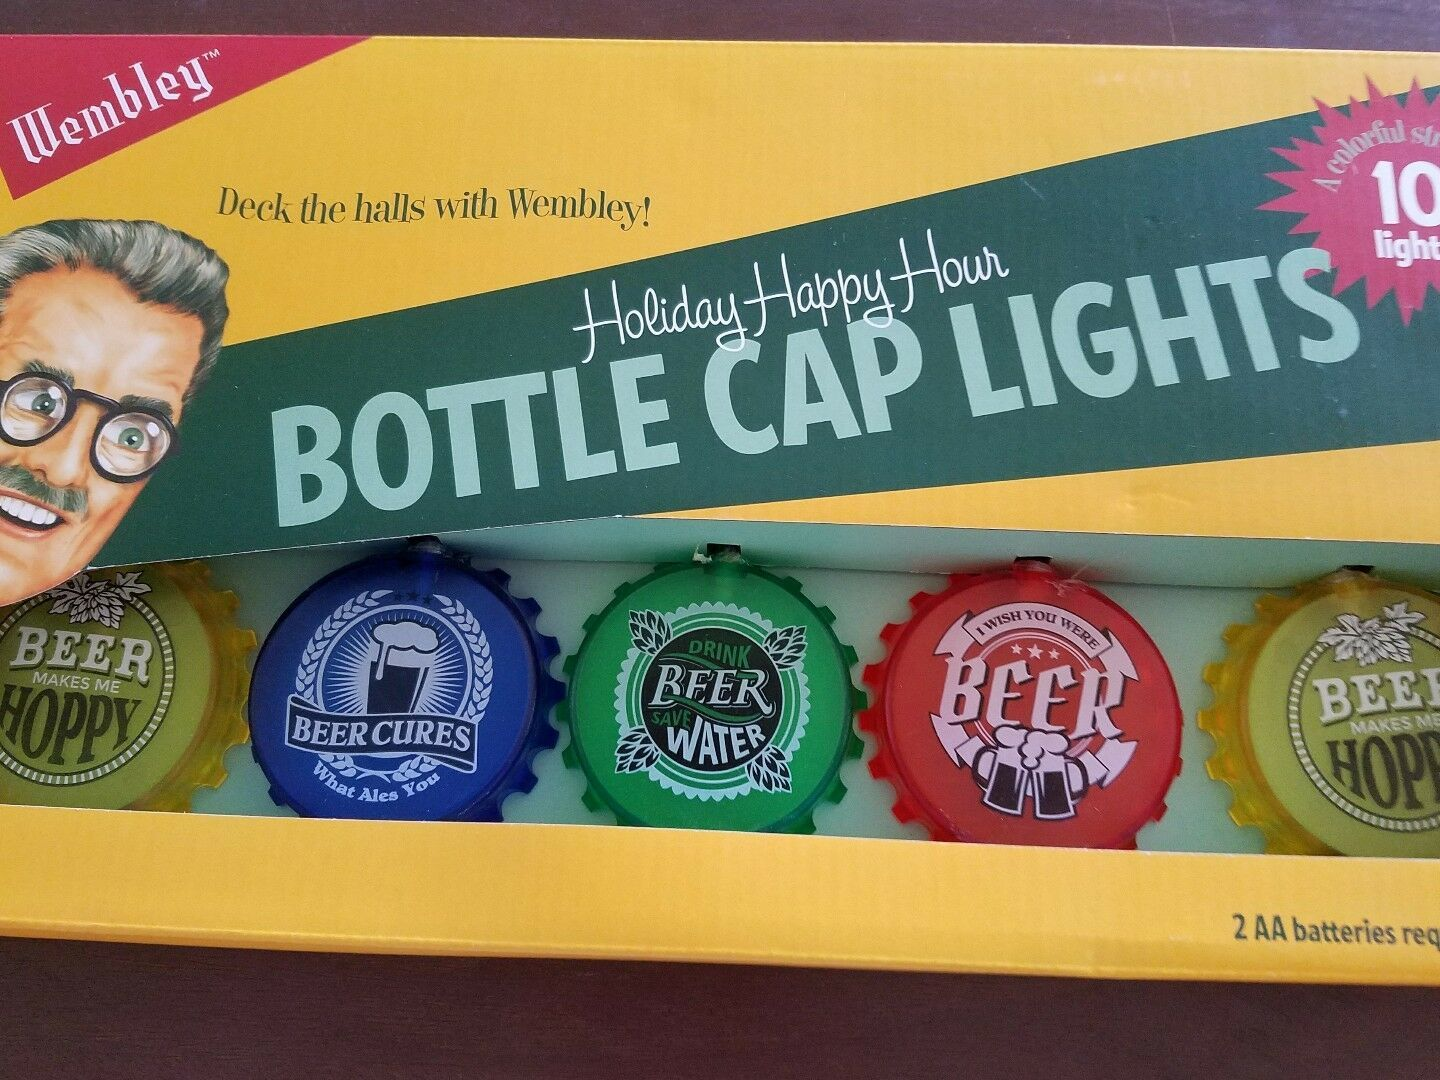 Wembley Holiday Happy Hour Bottle Cap Lights String